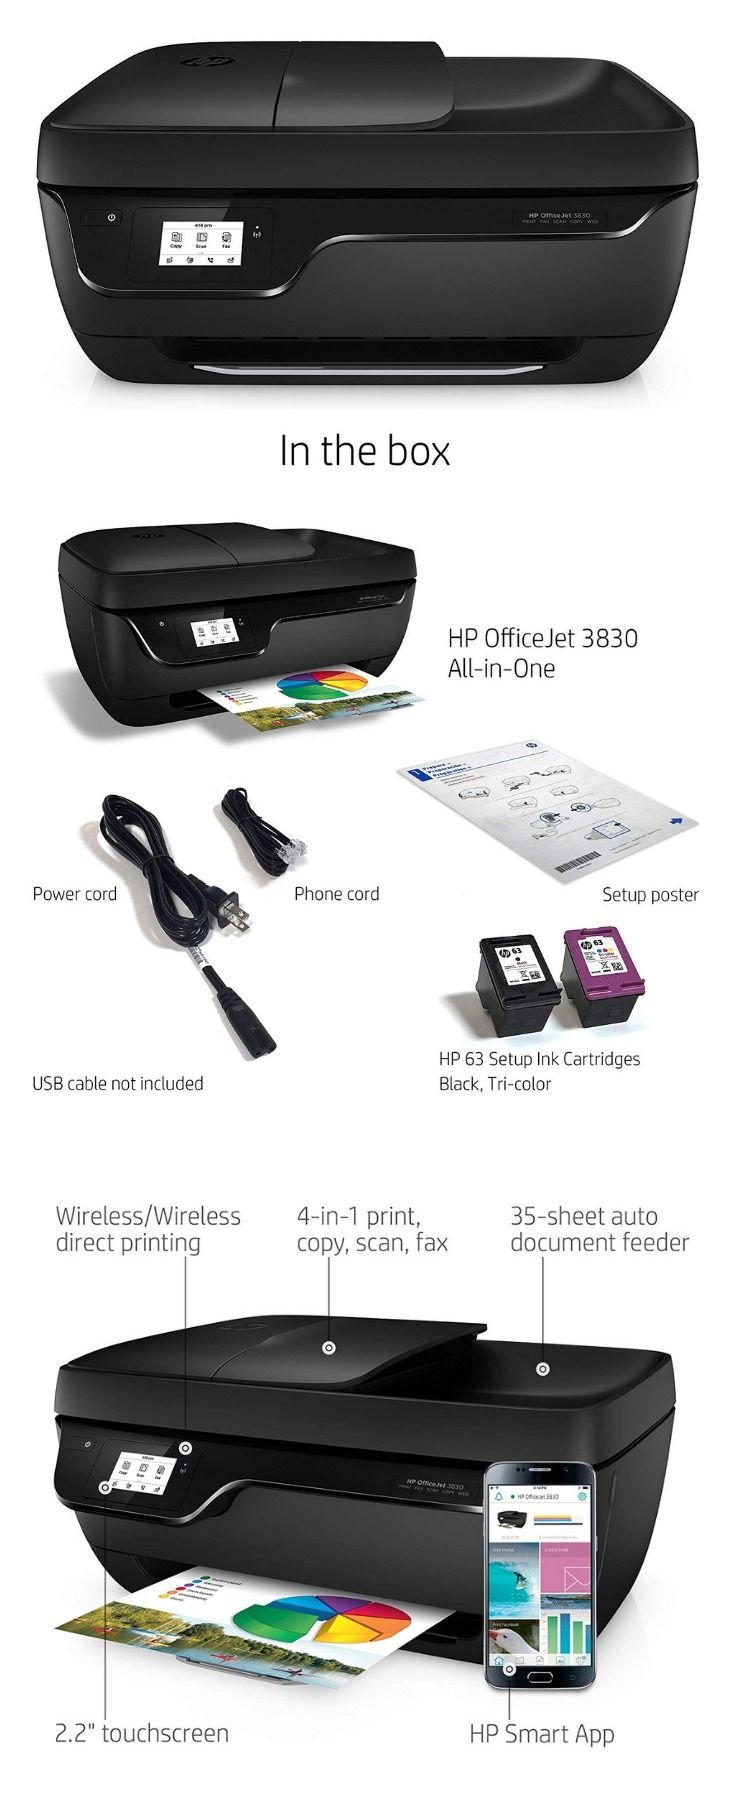 Main functions of this HP color inkjet photo printer copy